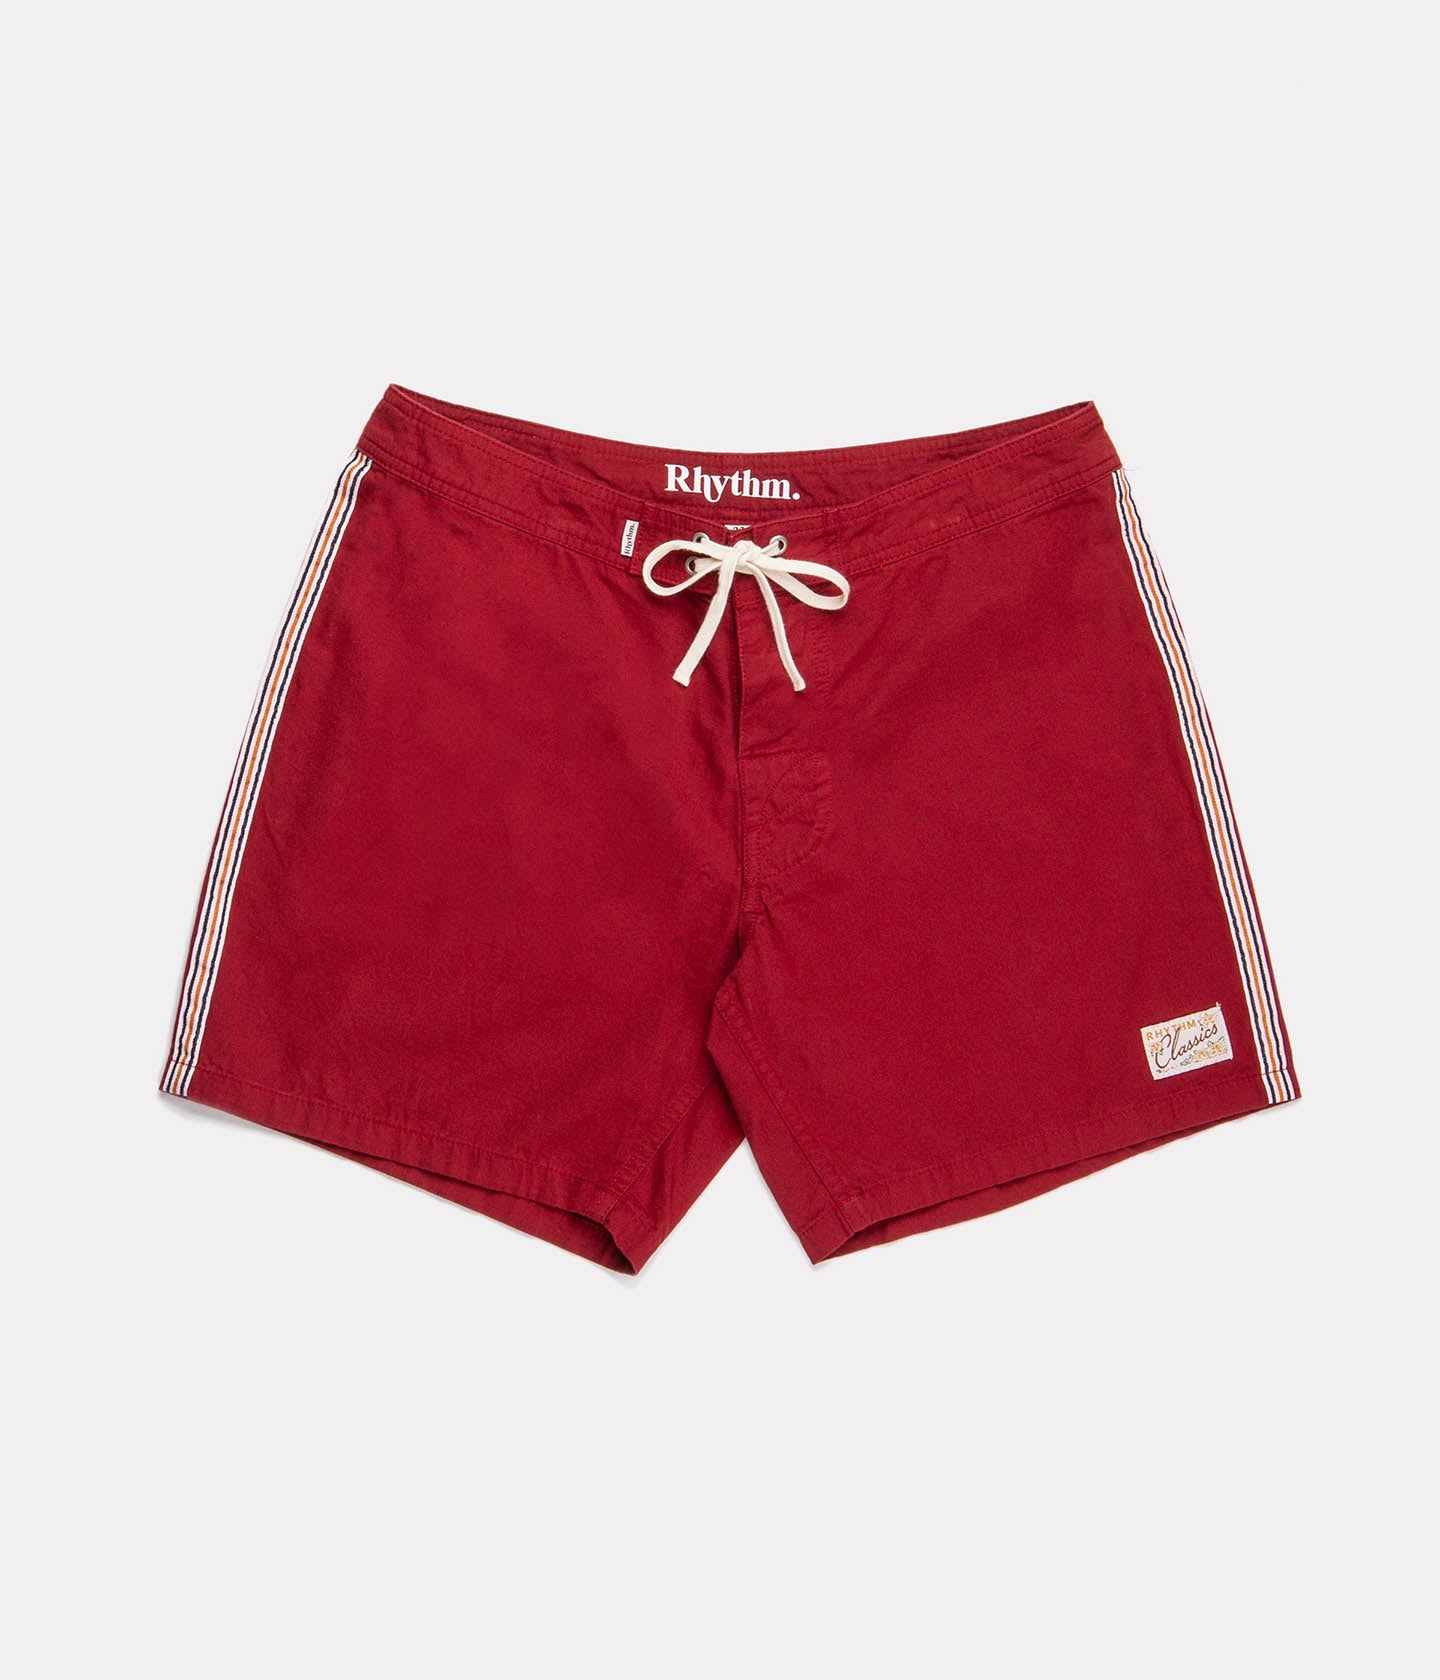 dc021c2fb2 Classic Trunk Classic Red l Trunks l Rhythm